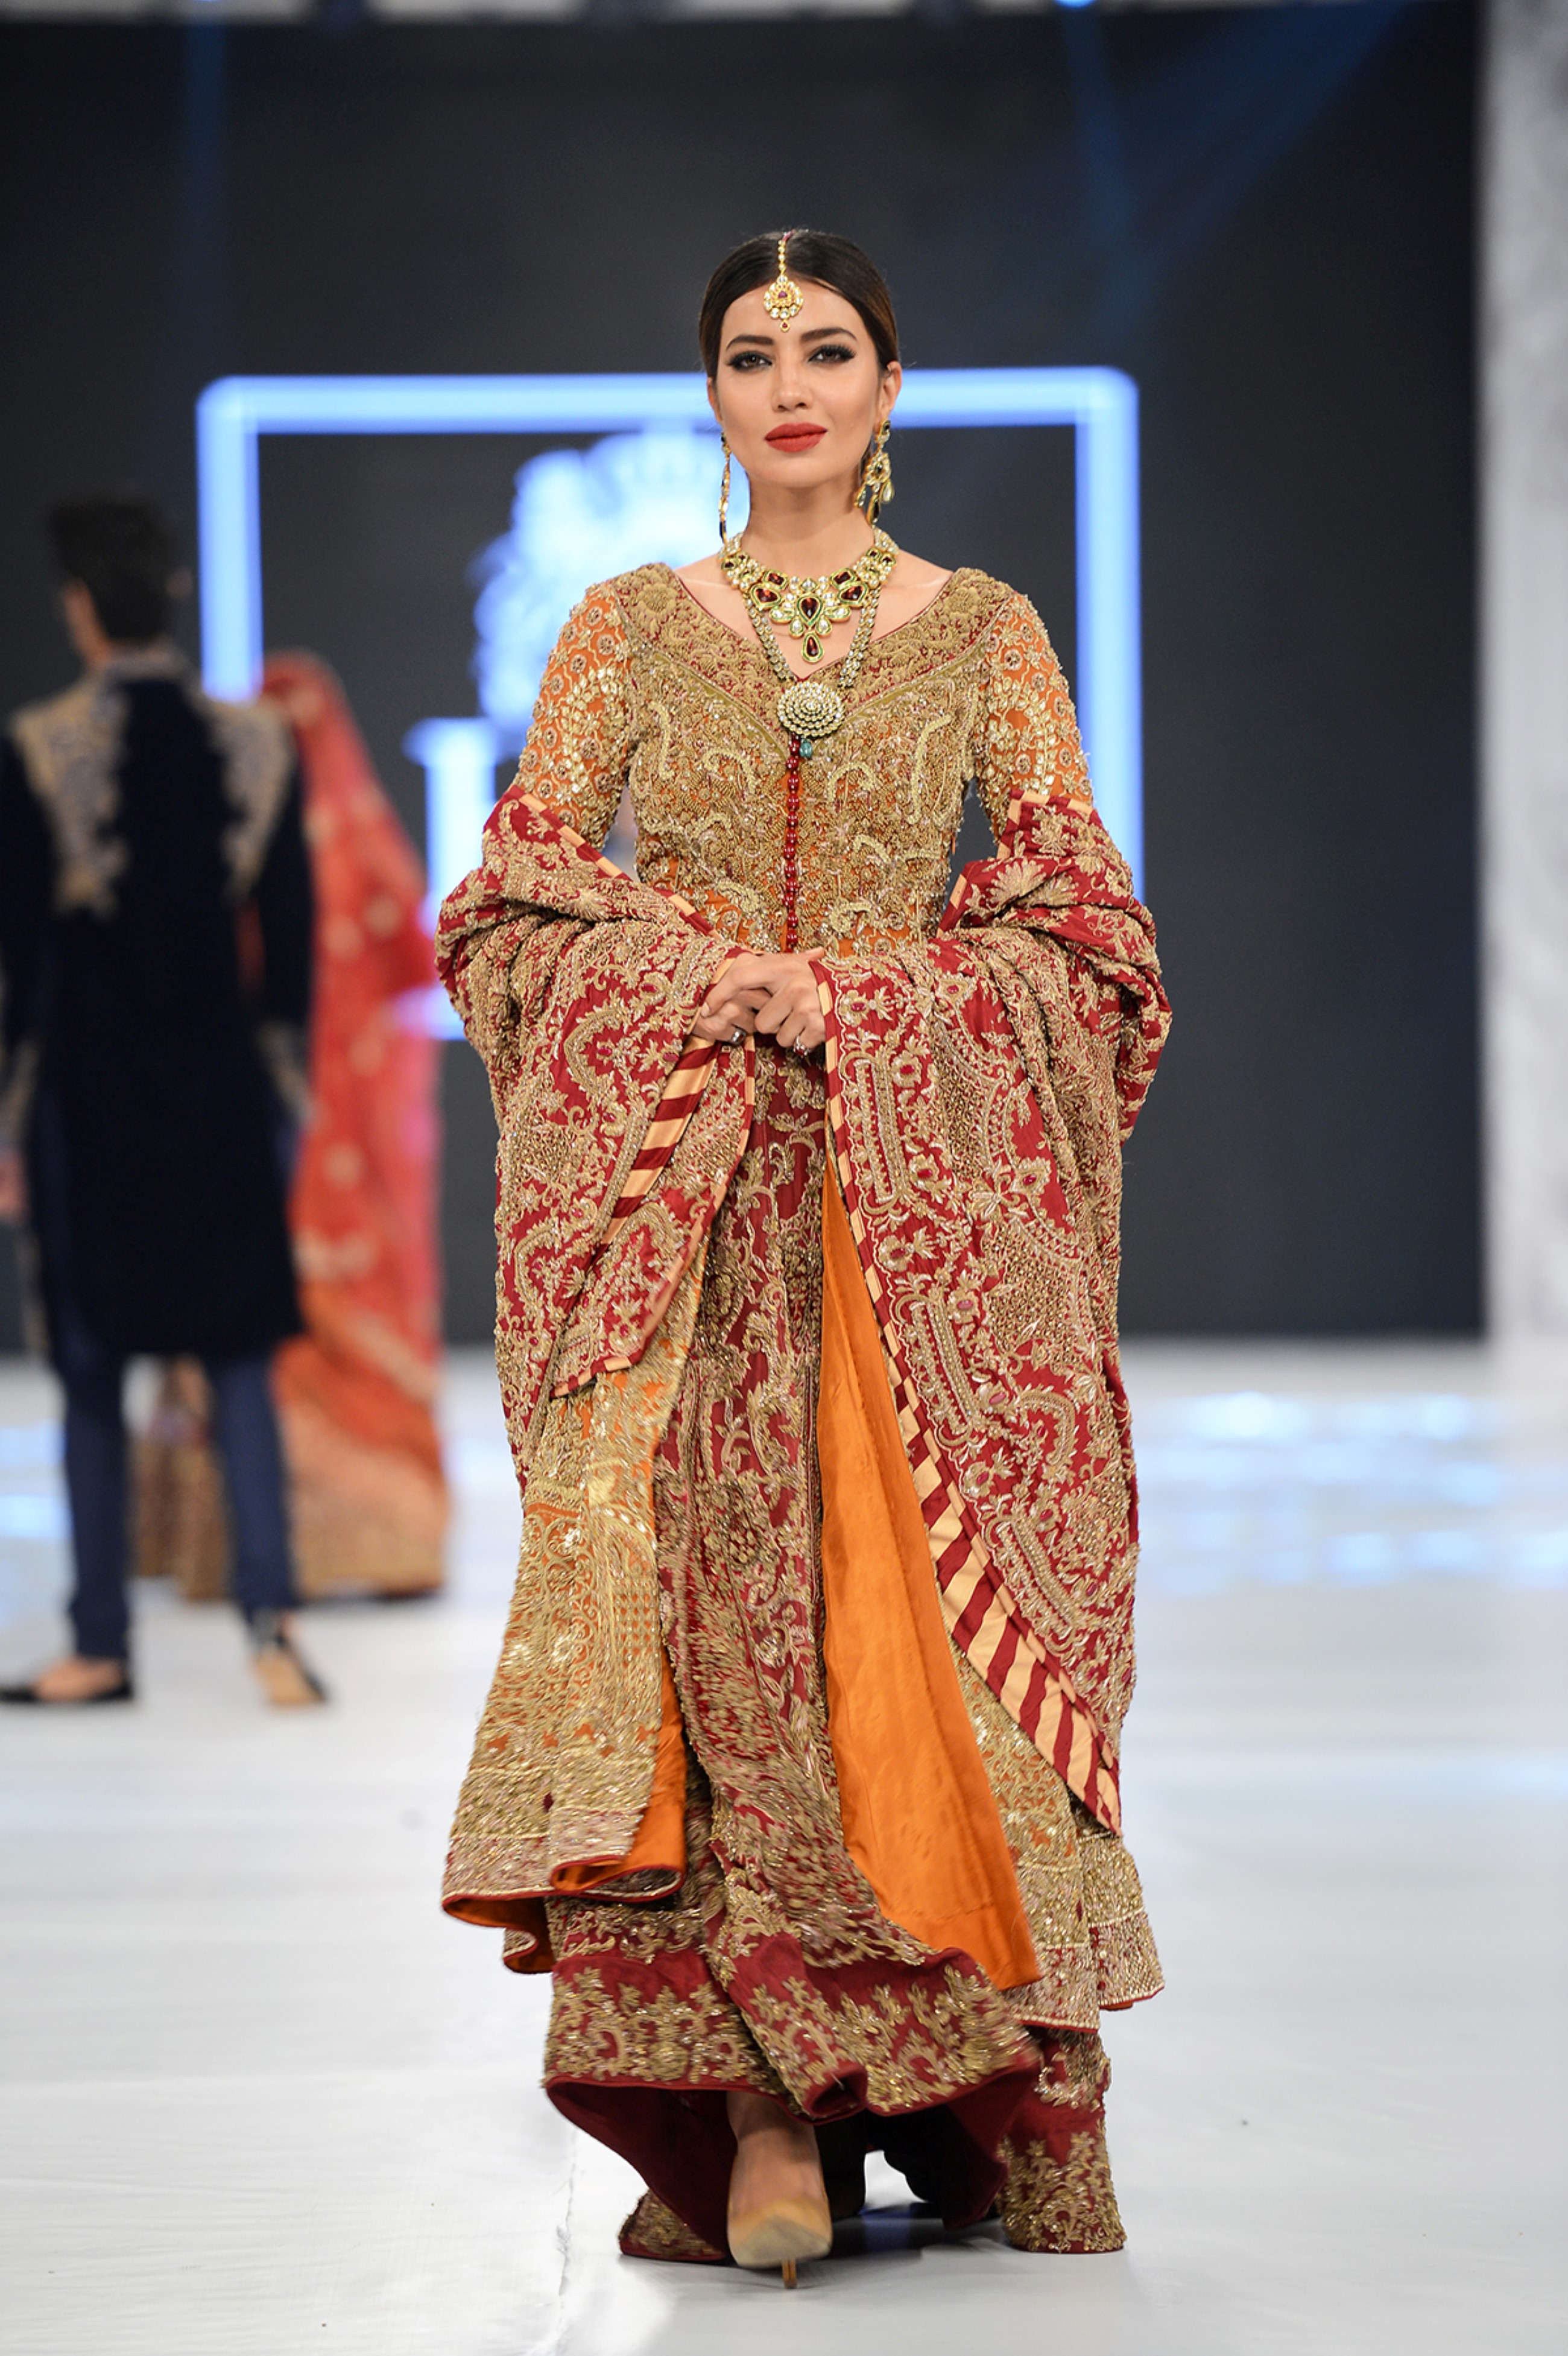 Hsy Pfdc L Oreal Paris Bridal Week Photography By Faisal Farooqui Dragonfly The Fashion Orientalist